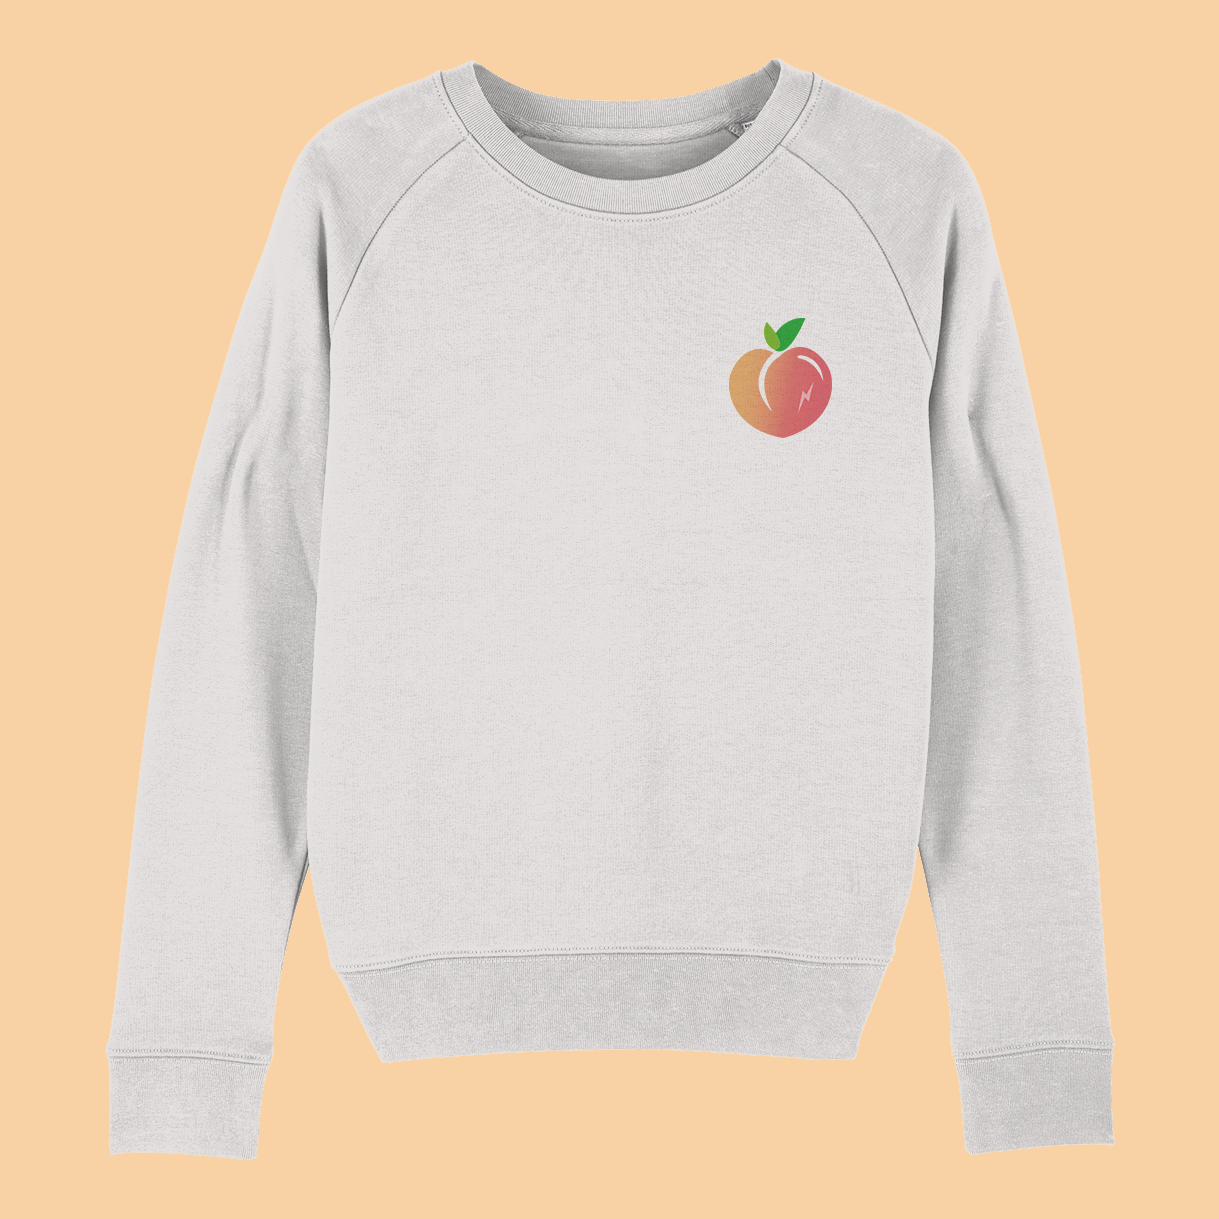 Peachy Embroidered Women's Sweatshirt 🍑